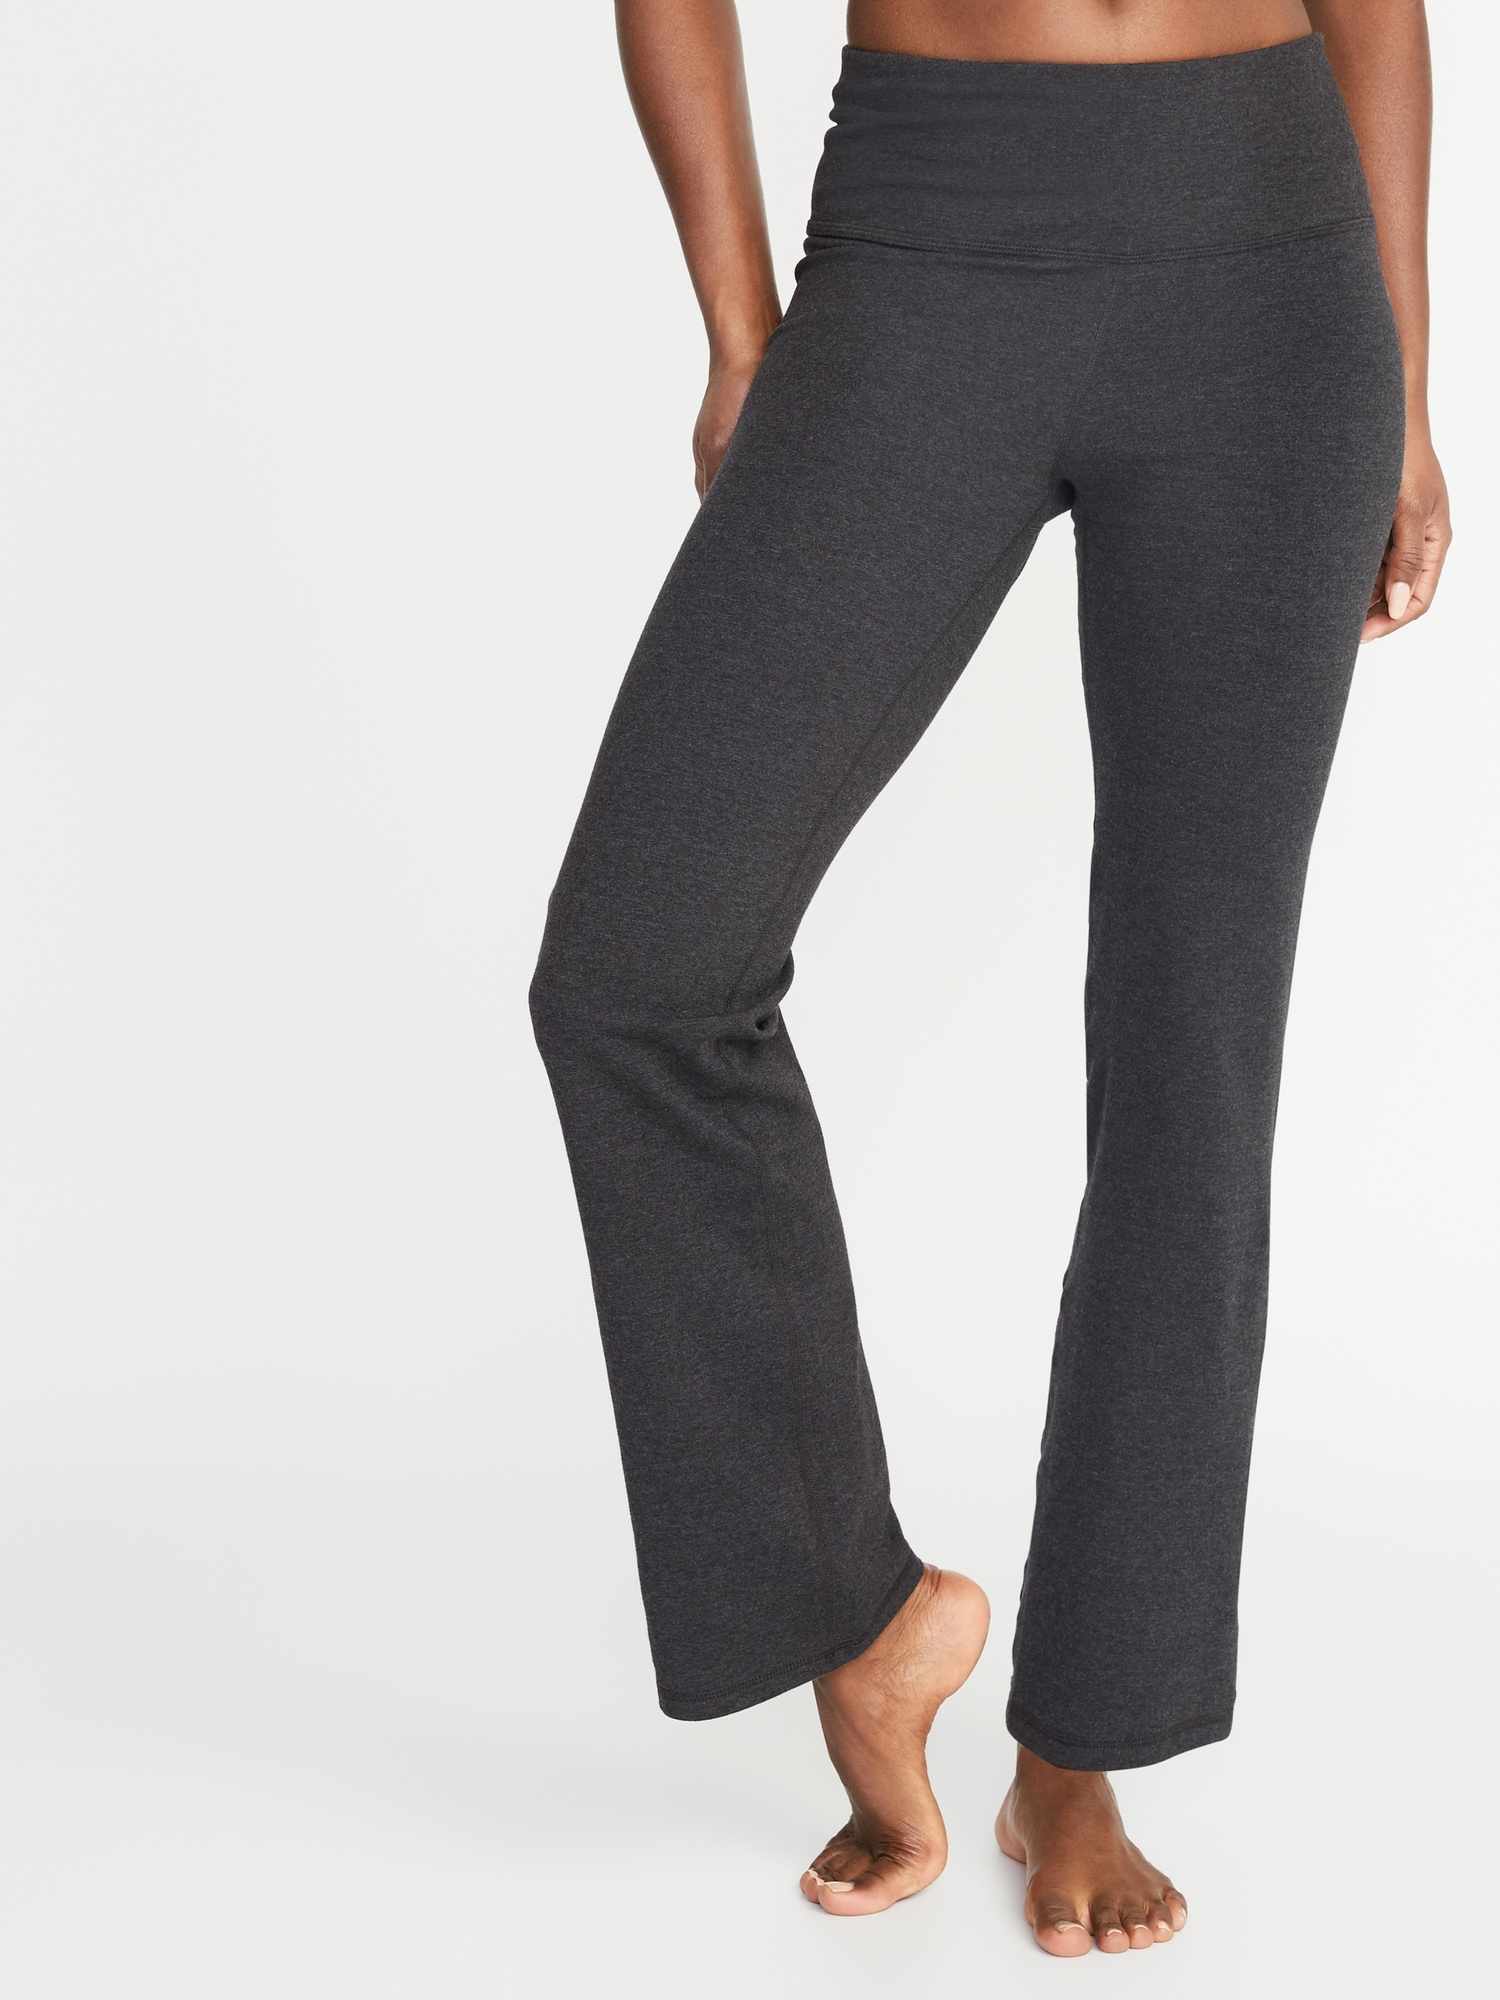 1380f1e63083a High-Rise Slim Boot-Cut Yoga Pants for Women | Old Navy